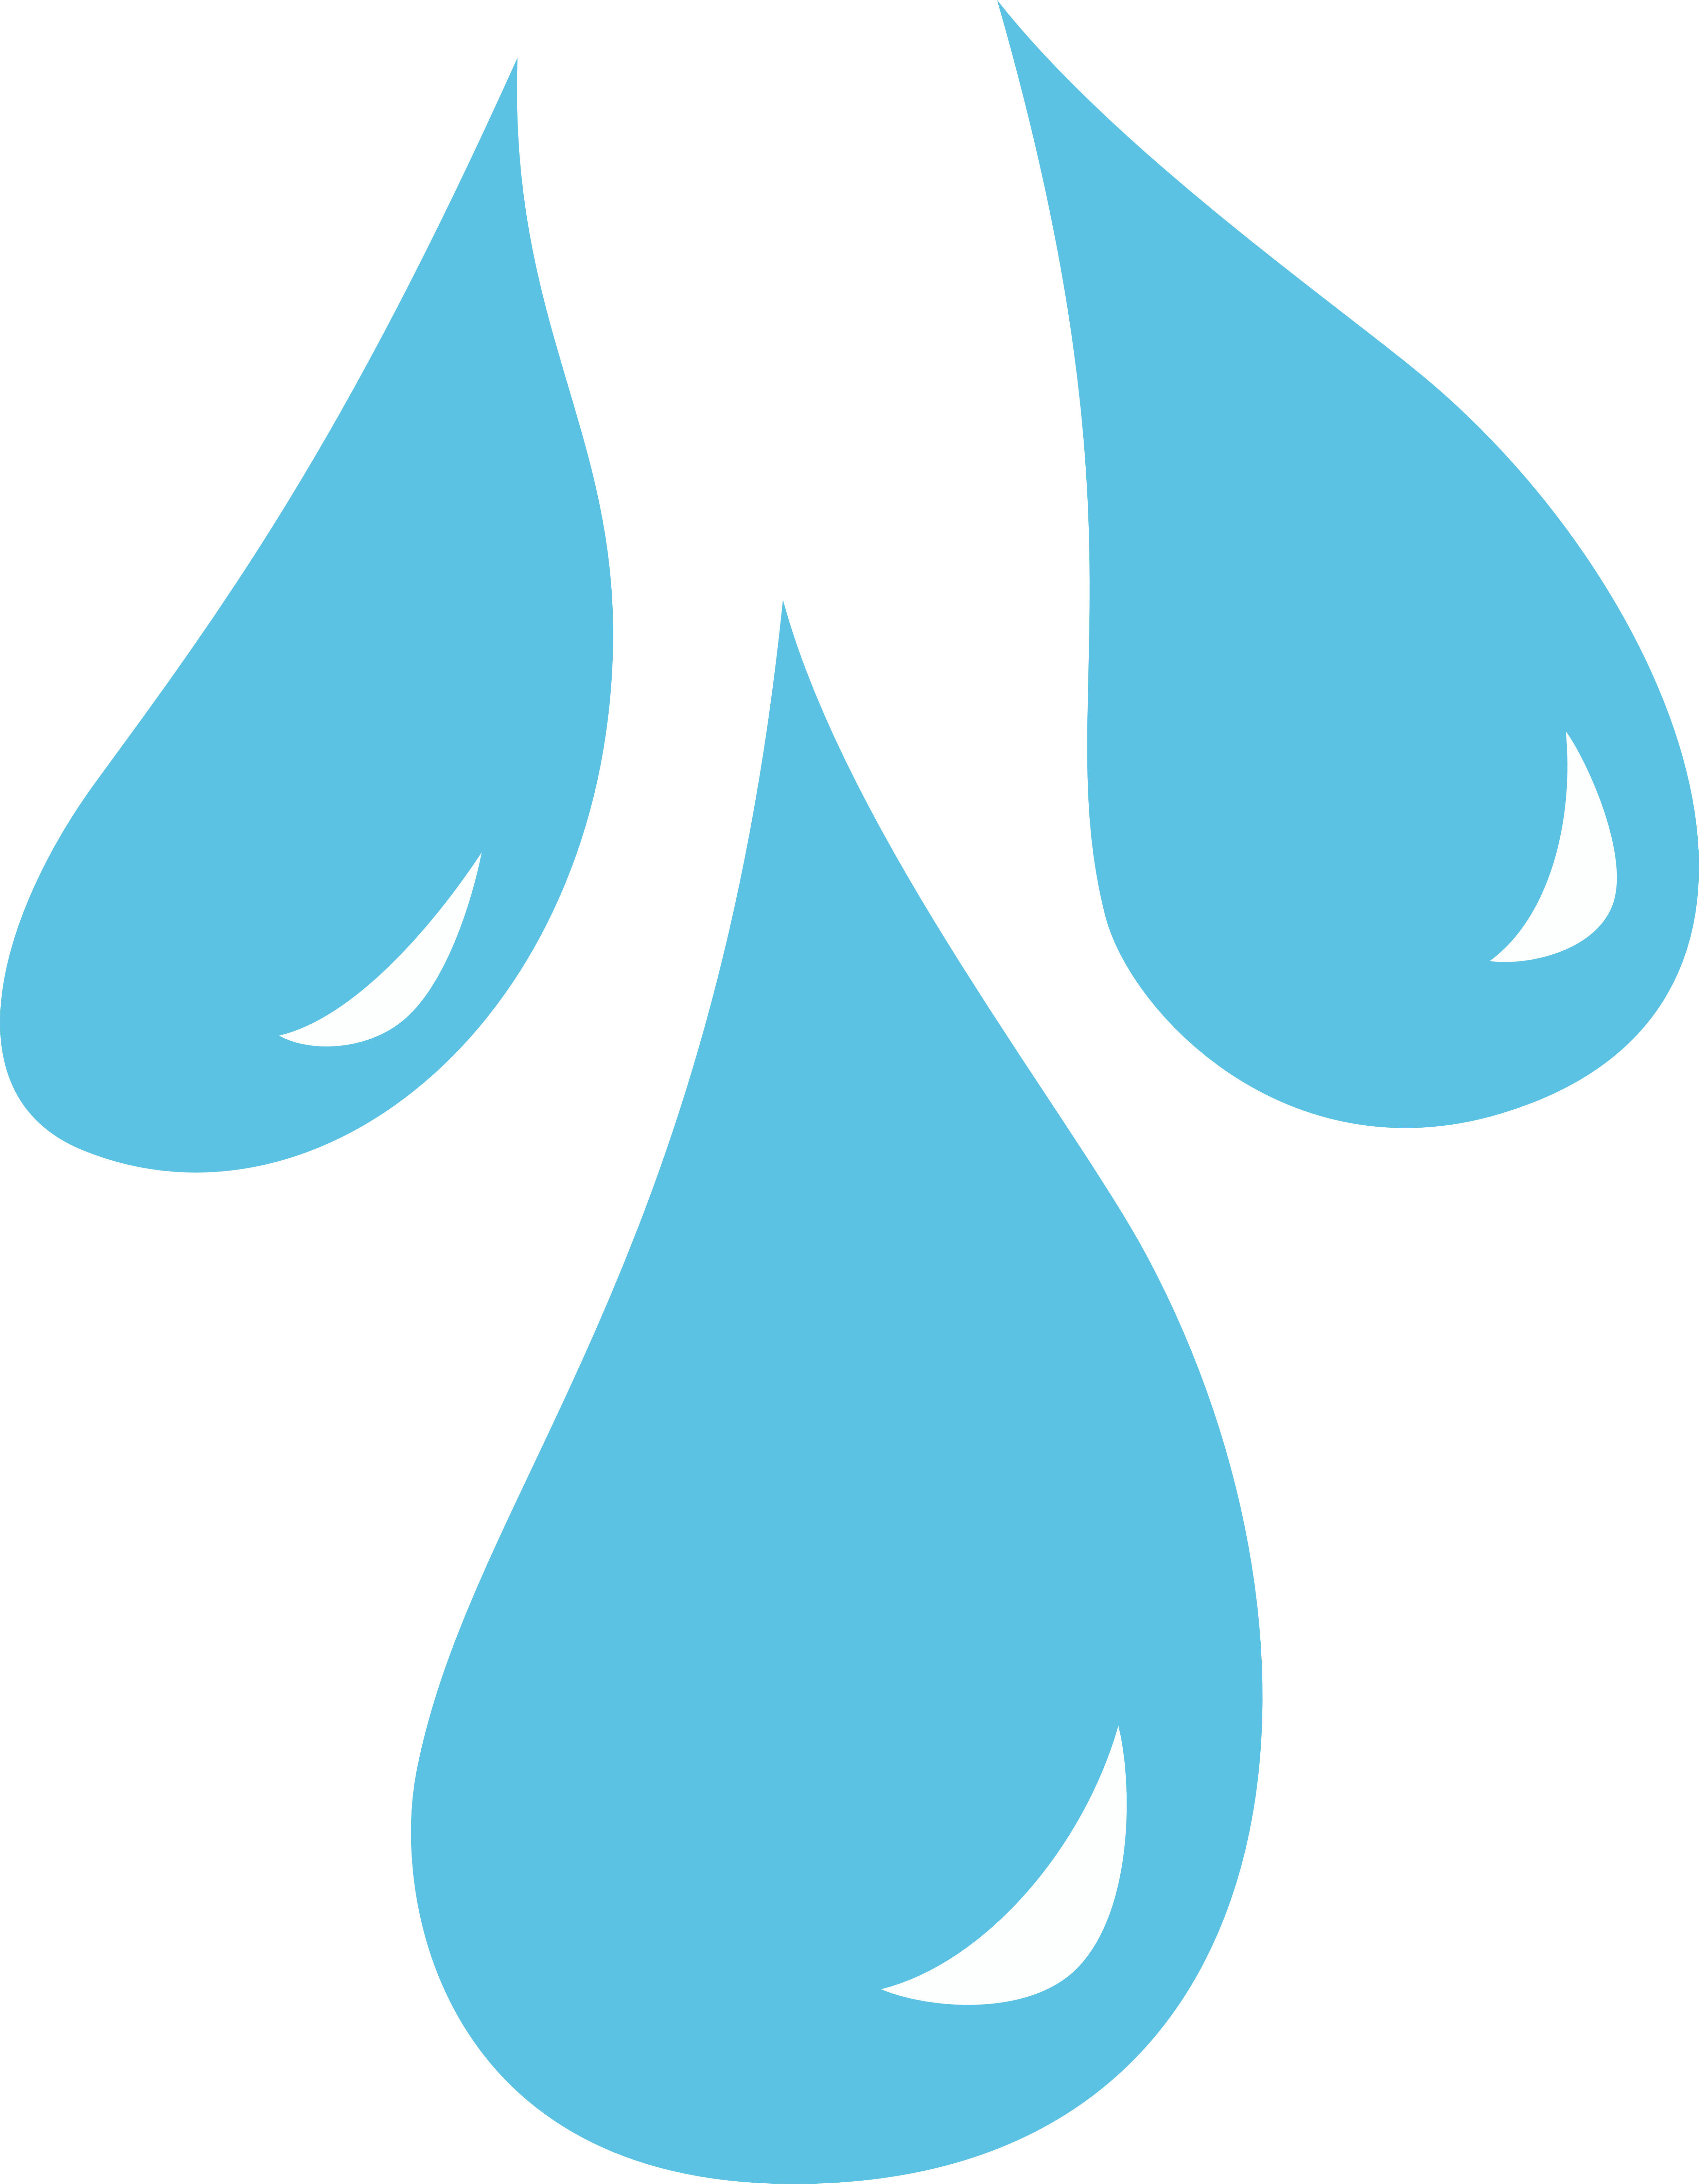 Free Raindrops Clipart, Download Free Clip Art, Free Clip.